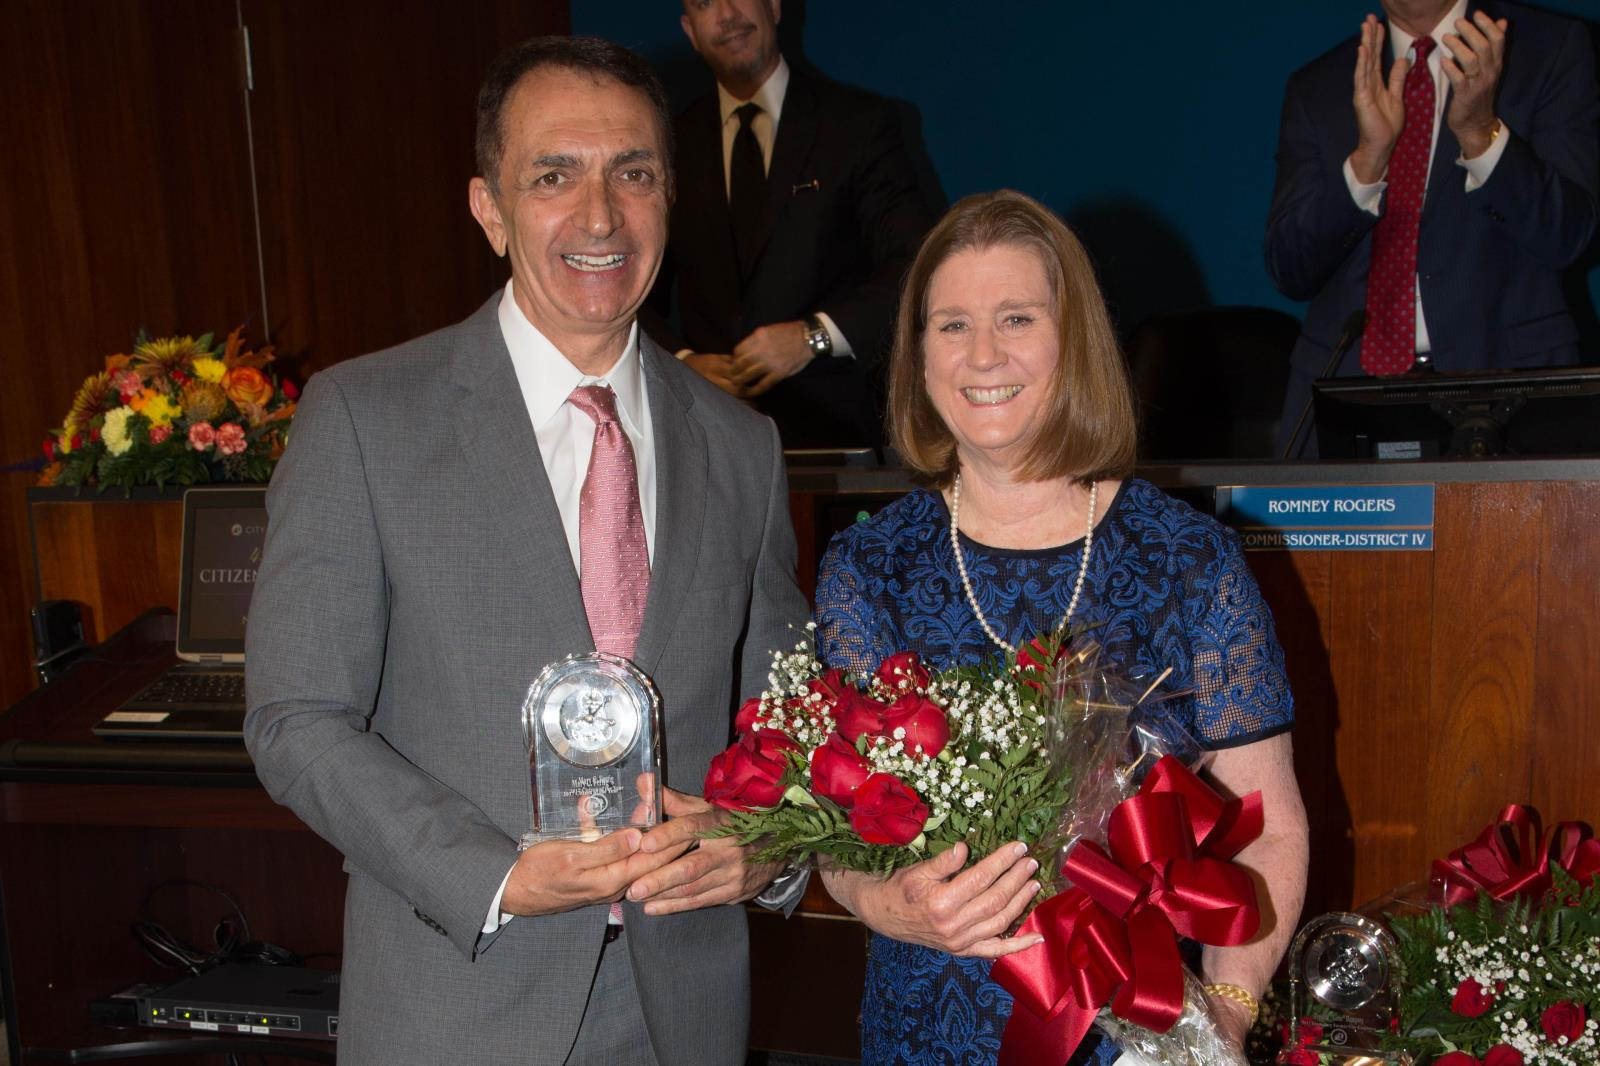 Commissioner Trantalis and Citizen of the Year Mary Fertig